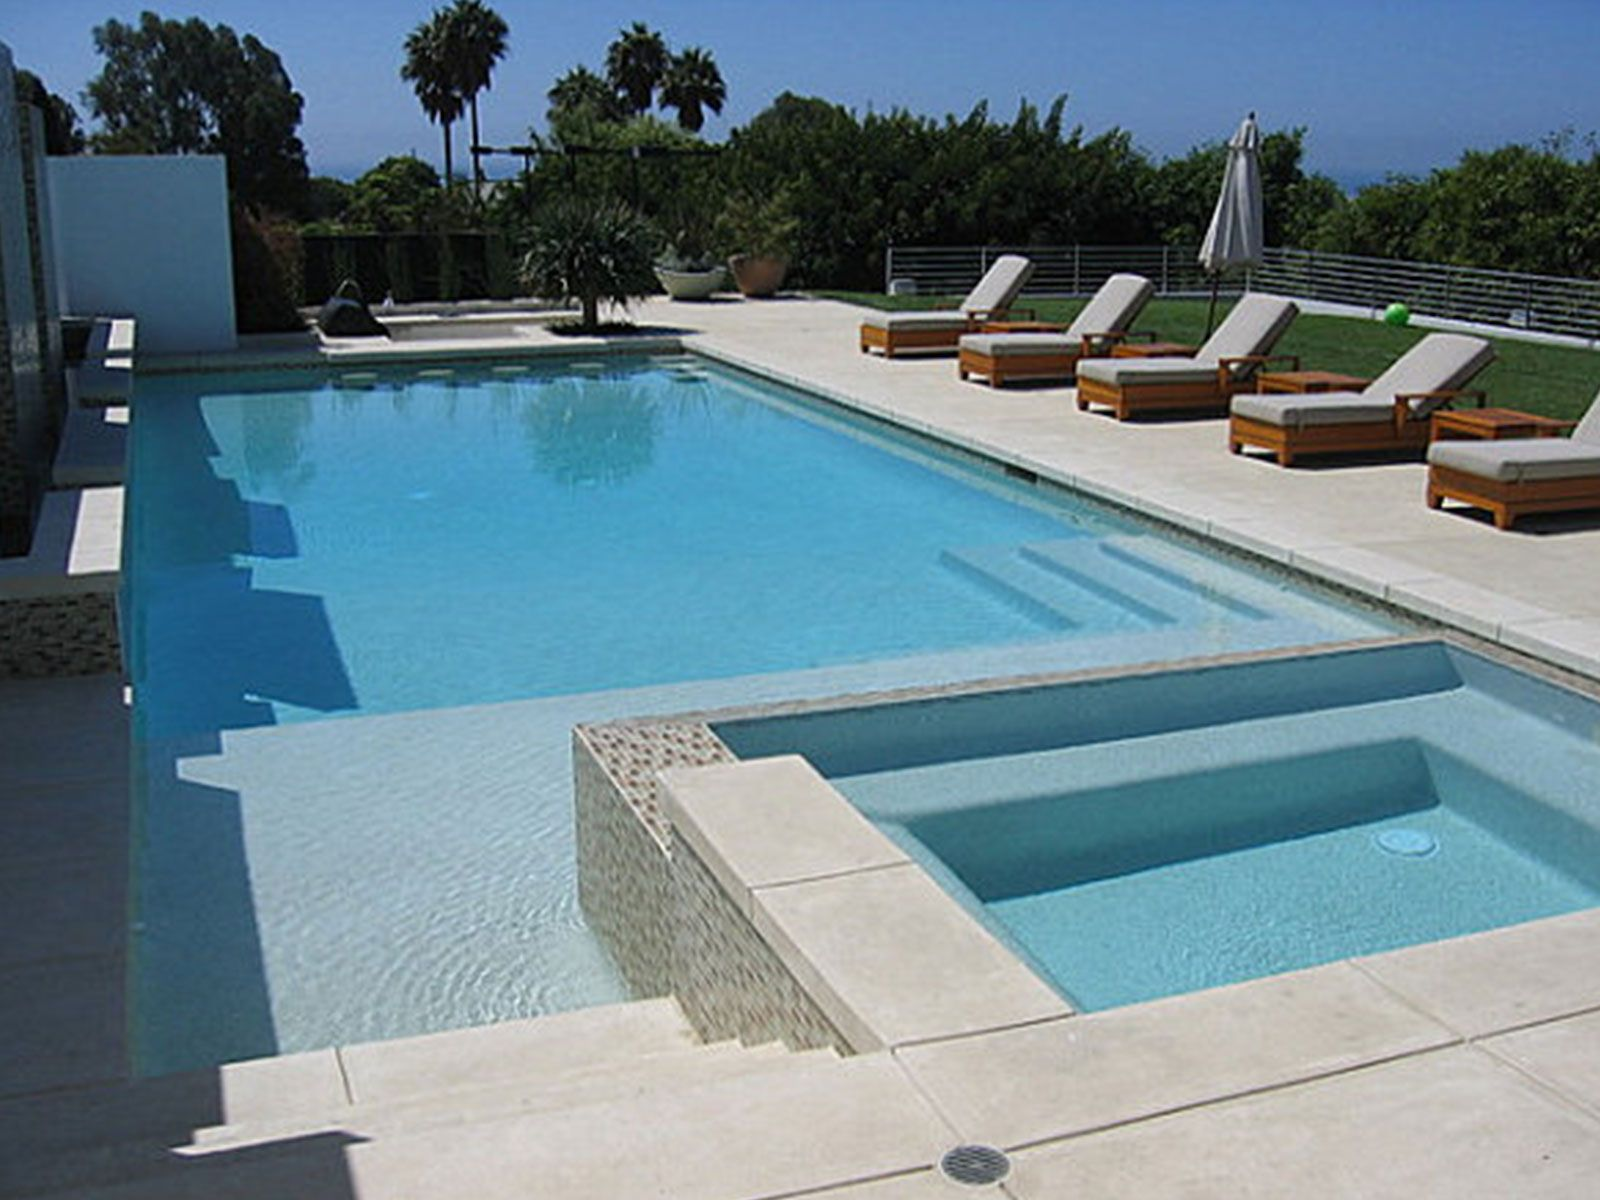 Simple swimming pool design image modern creative swimming modern swimming pools and spas pool - Backyard swimming pools designs ...